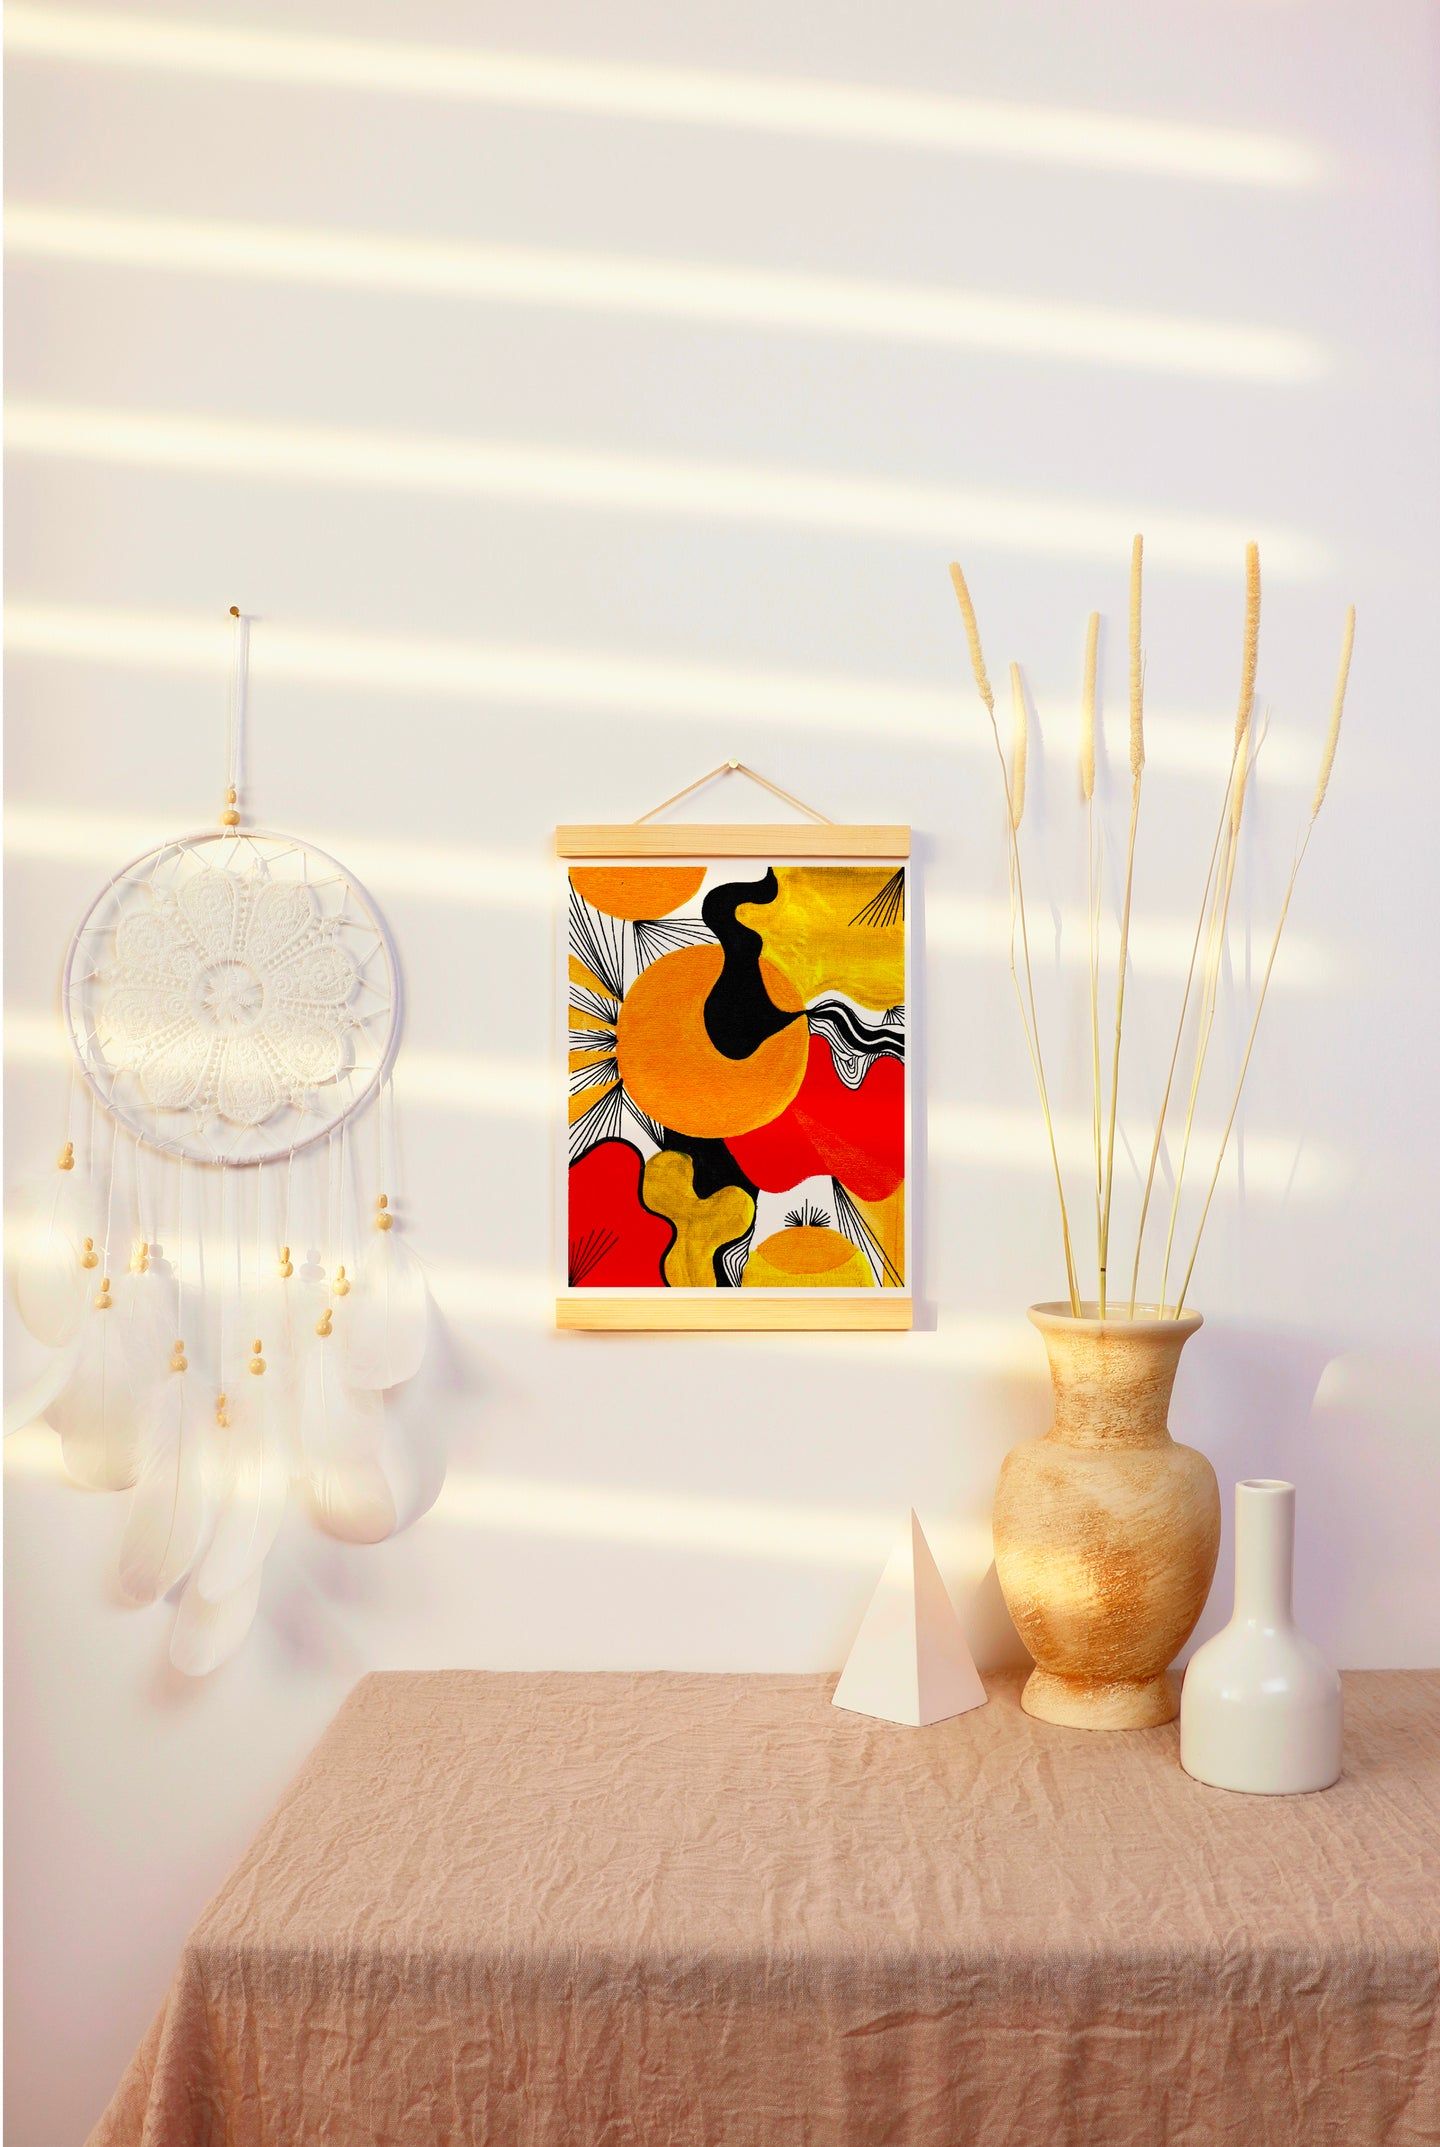 Bright, white room with simple neutral decor, including a tan vase, white dream catcher and tan table cloth. Room pops with vibrant painting, hanging in a poster hanger. Painting features abstract organic green, red, black and gold shapes. Detailed with black lines. This design any room pop with energy!